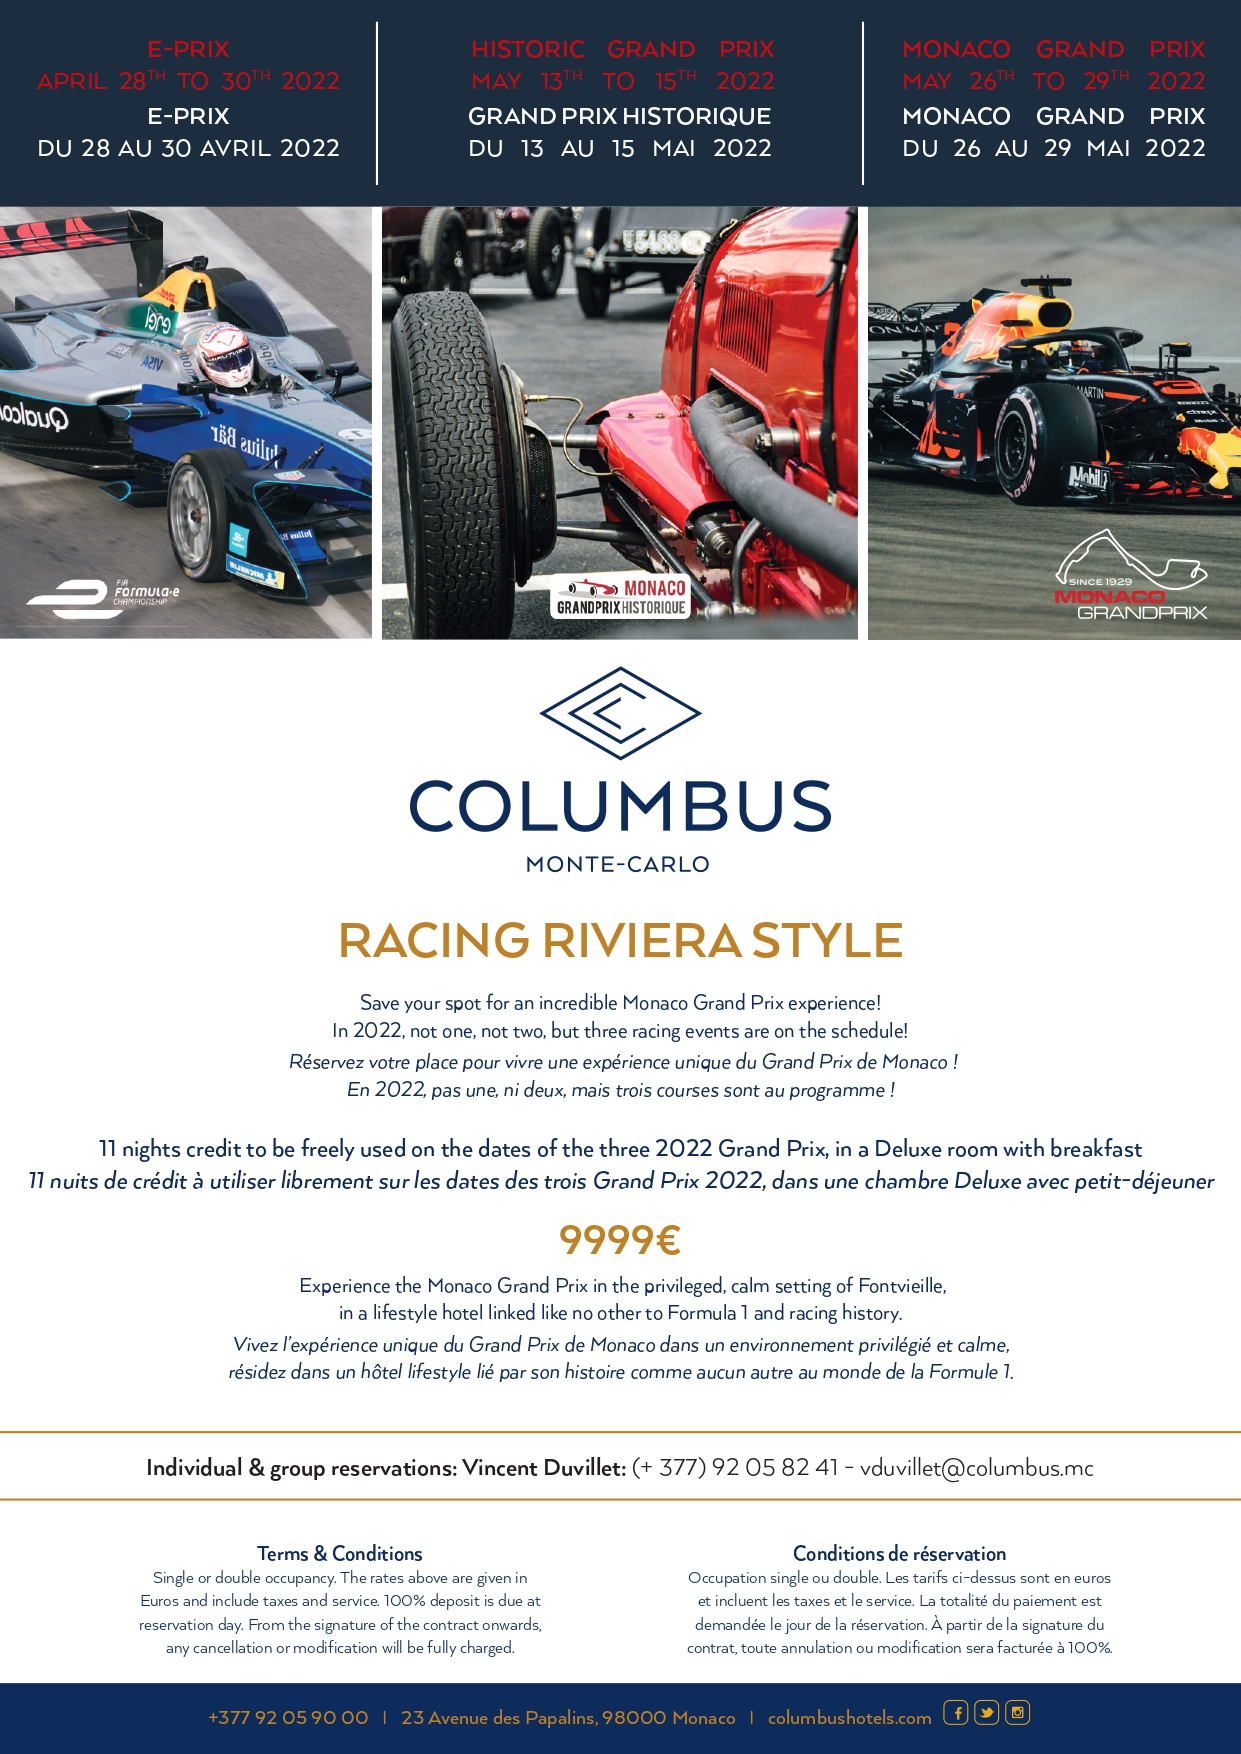 Flyer-Racing-Riviera-Style-Three-Grand-Prix-Offer-Columbus Monte-Carlo-2022_page-0001